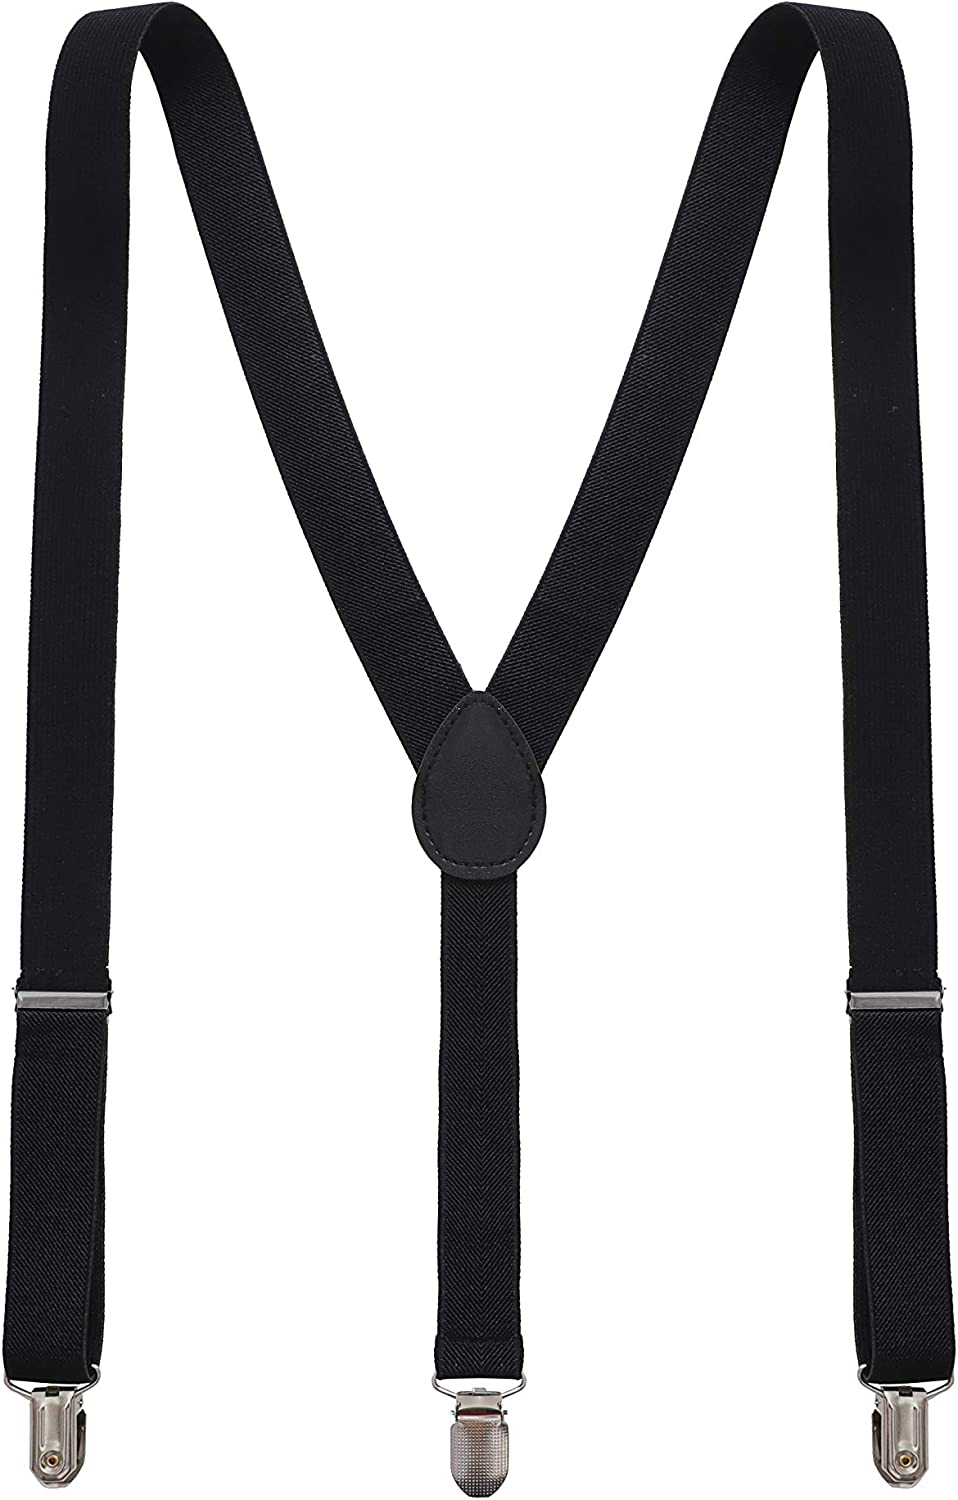 Y Back Style Unisex Suspenders for men and Women Polyester with Metal Clips Adjustable Elastic, One Size Fits All